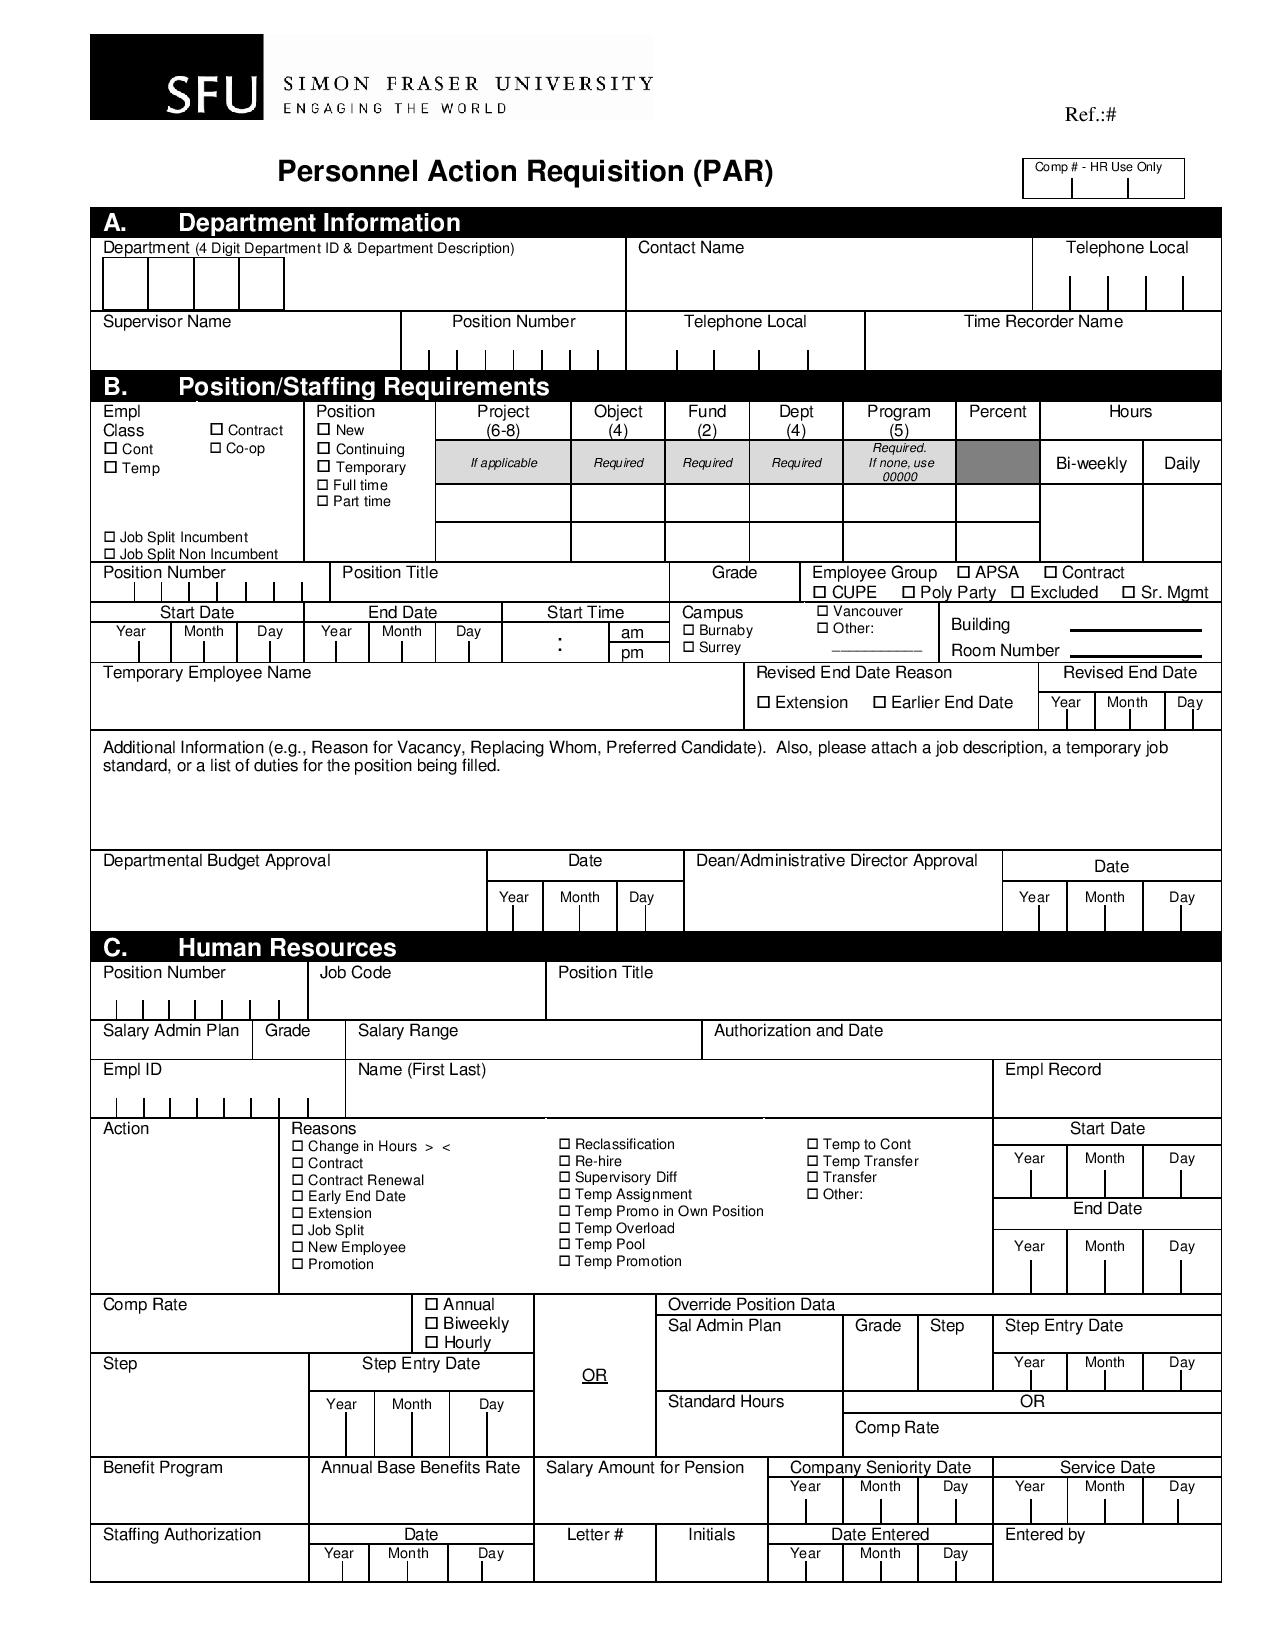 personnel action requisition form page 0011